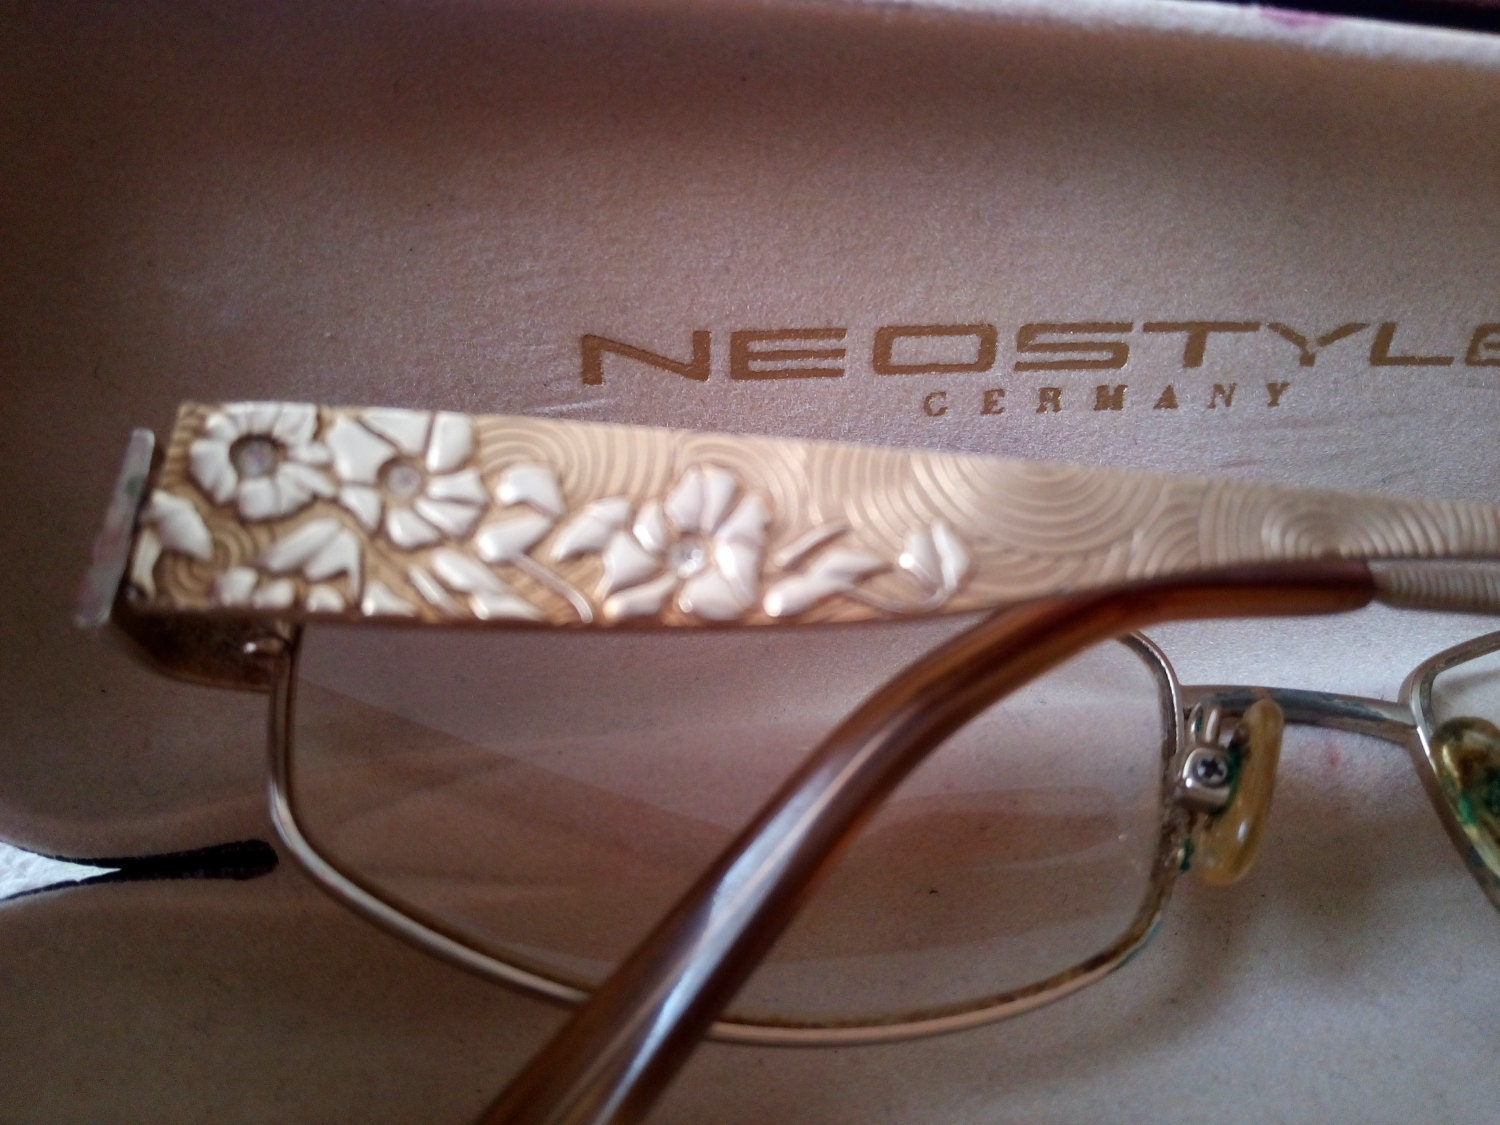 7251c18dba9 Vintage Janet Reger London Glasses Metal Frames with Leather Case by  Neostyle Germany